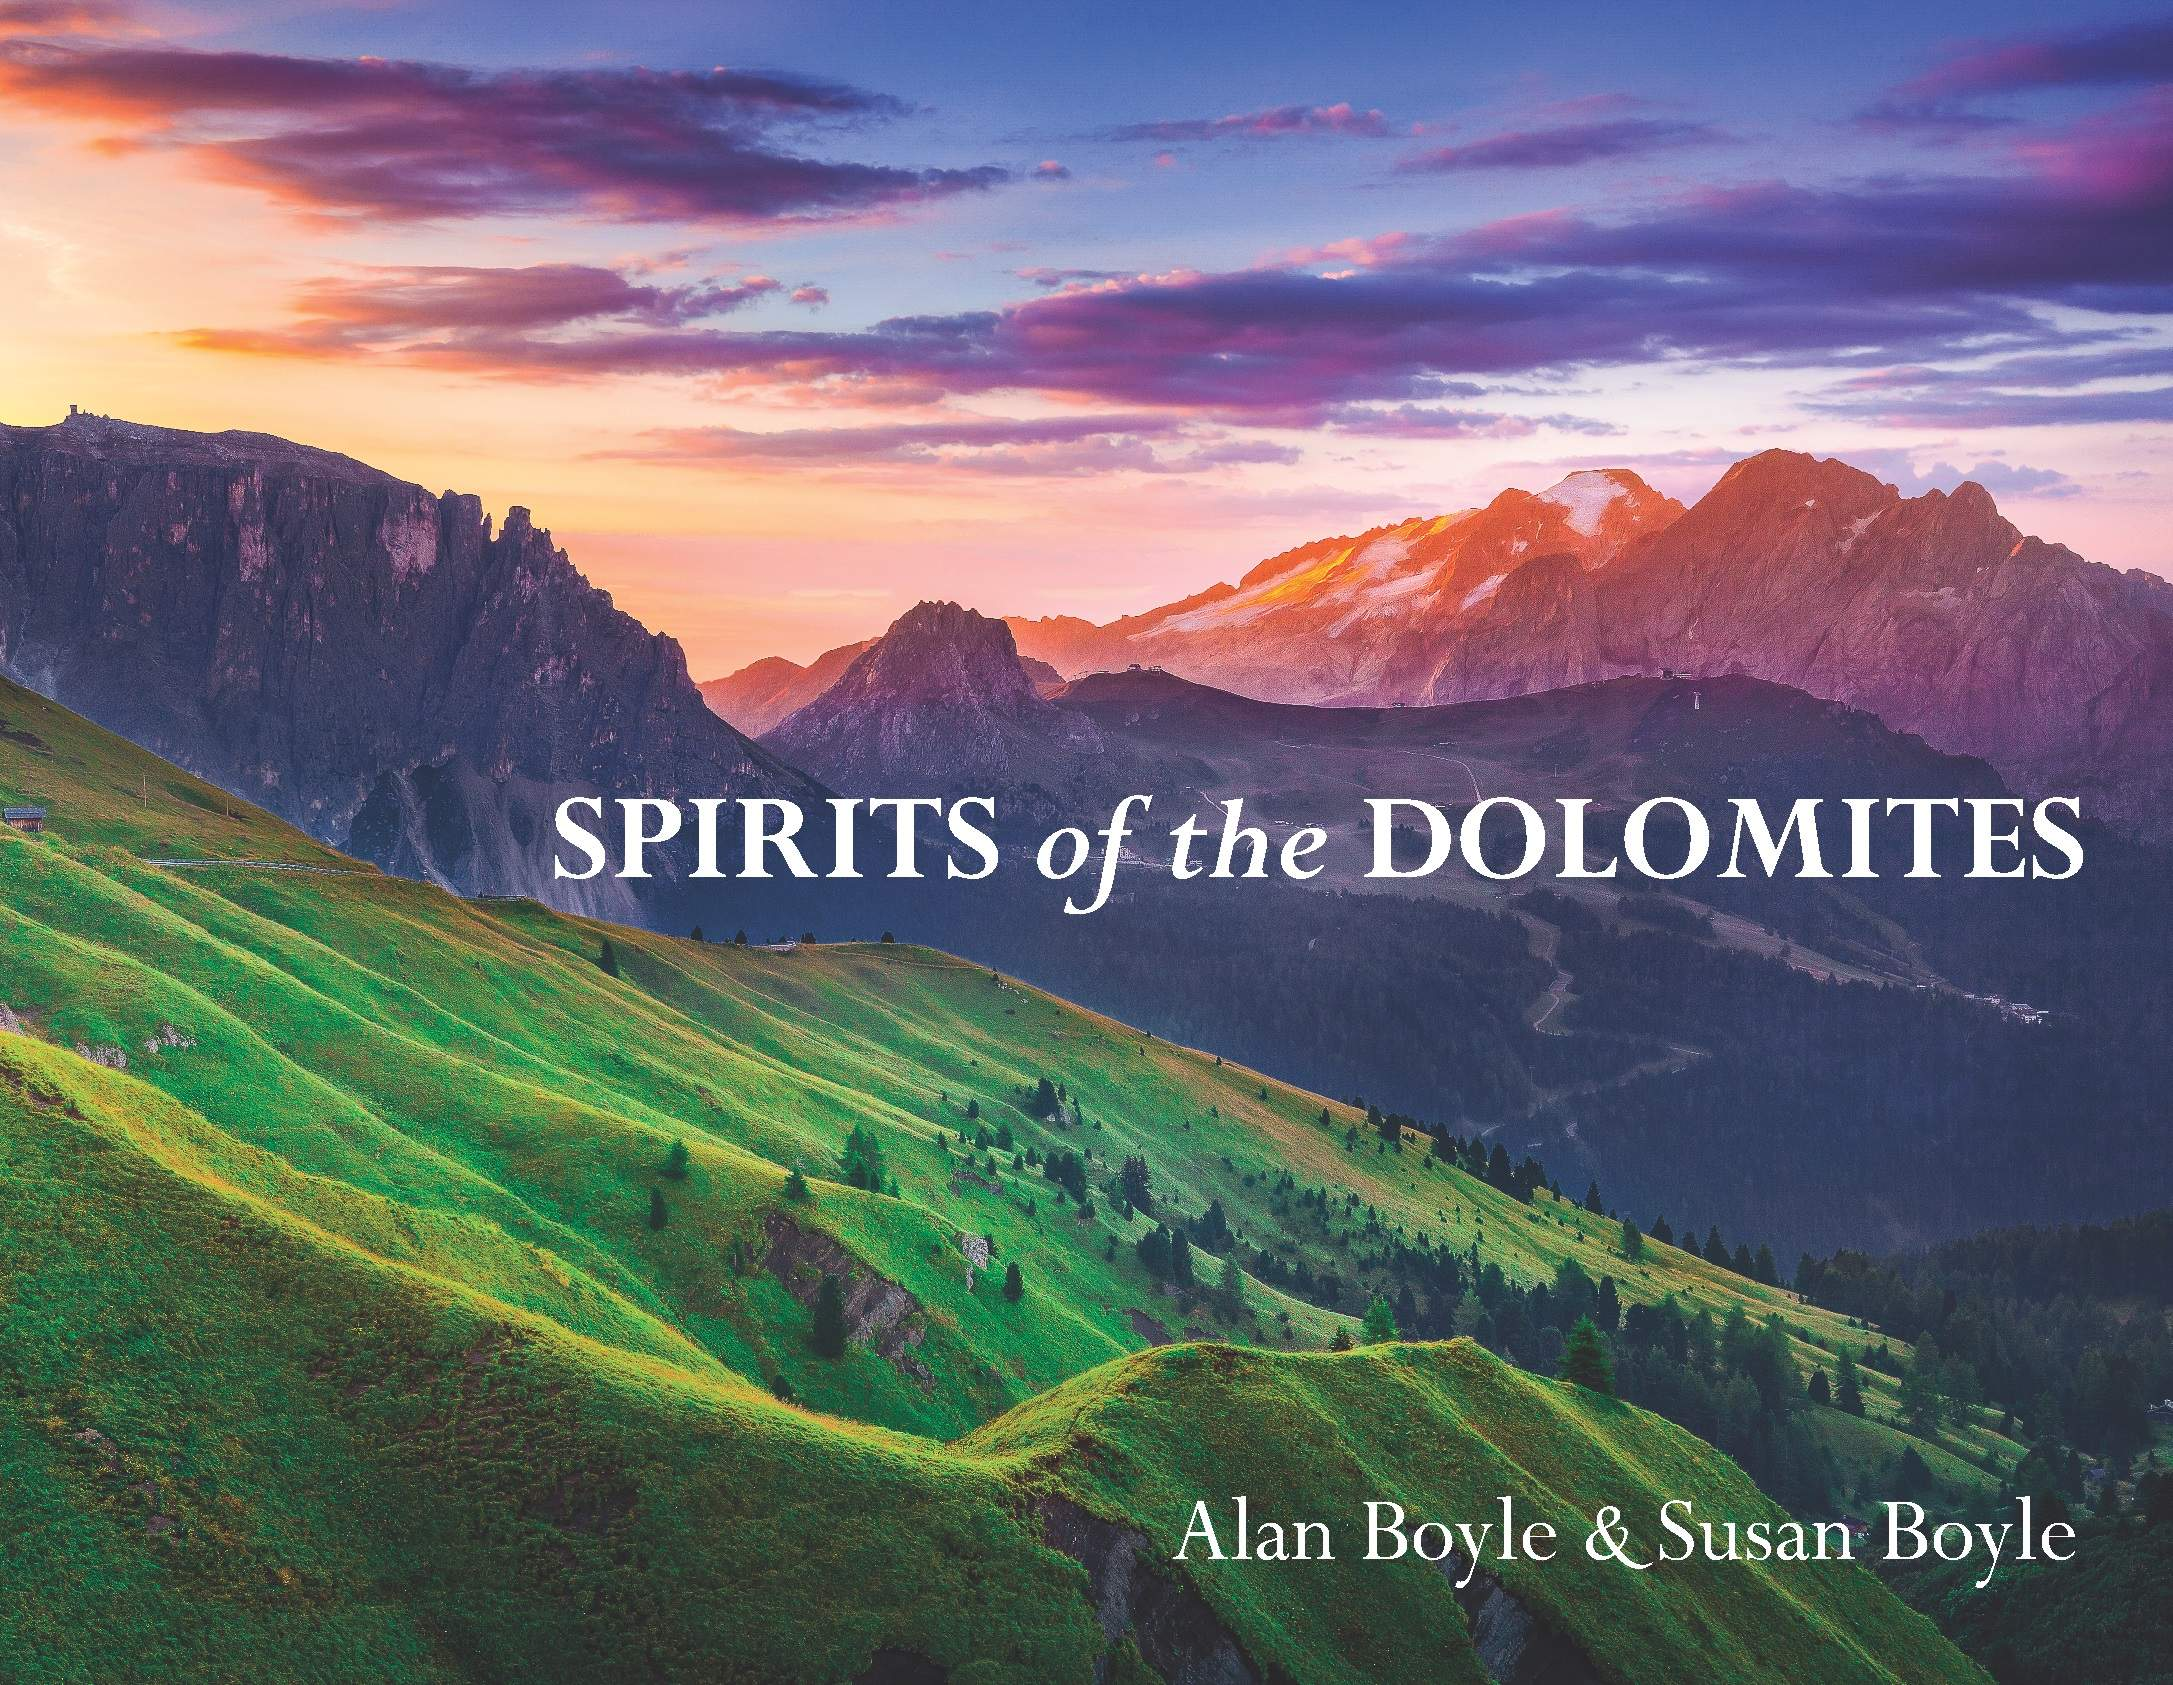 SPIRITS of the DOLOMITES